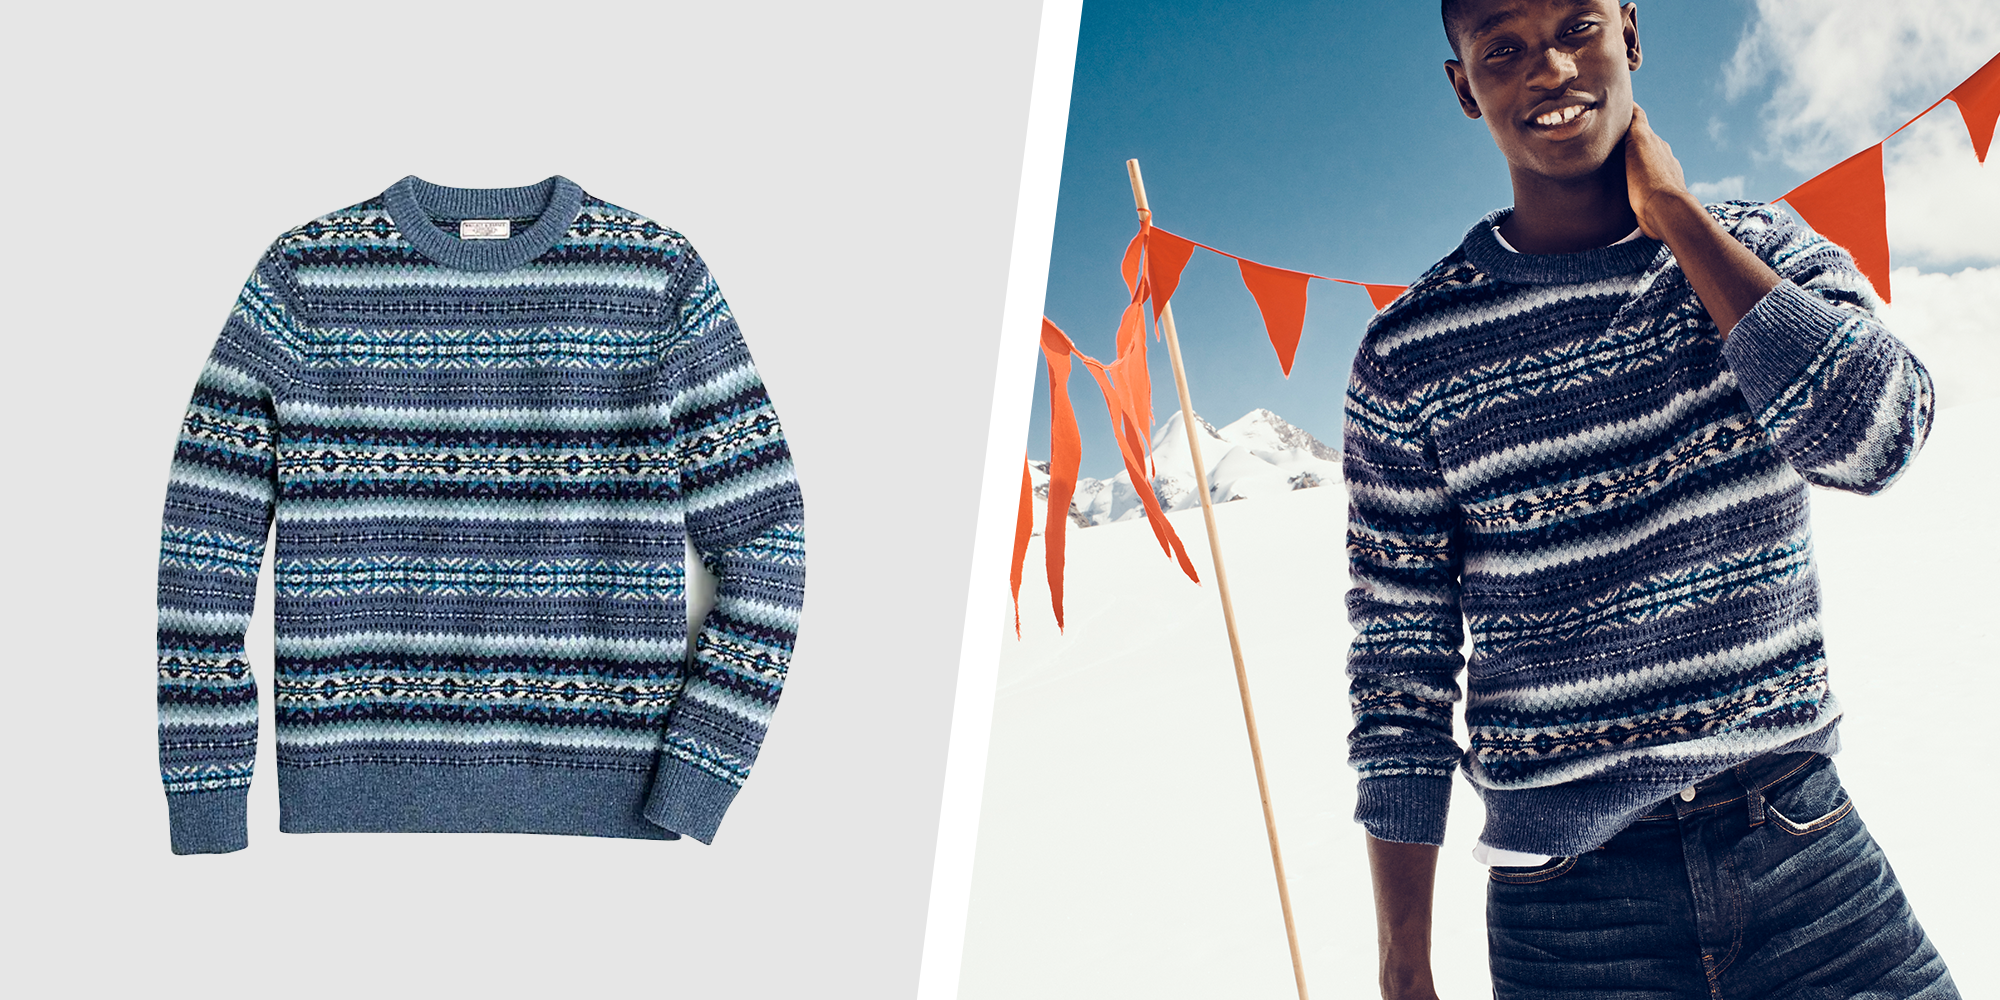 d4dd9aed127c0 Ugly Christmas Sweaters Are Out. These Stylish Holiday Pullovers Are In.